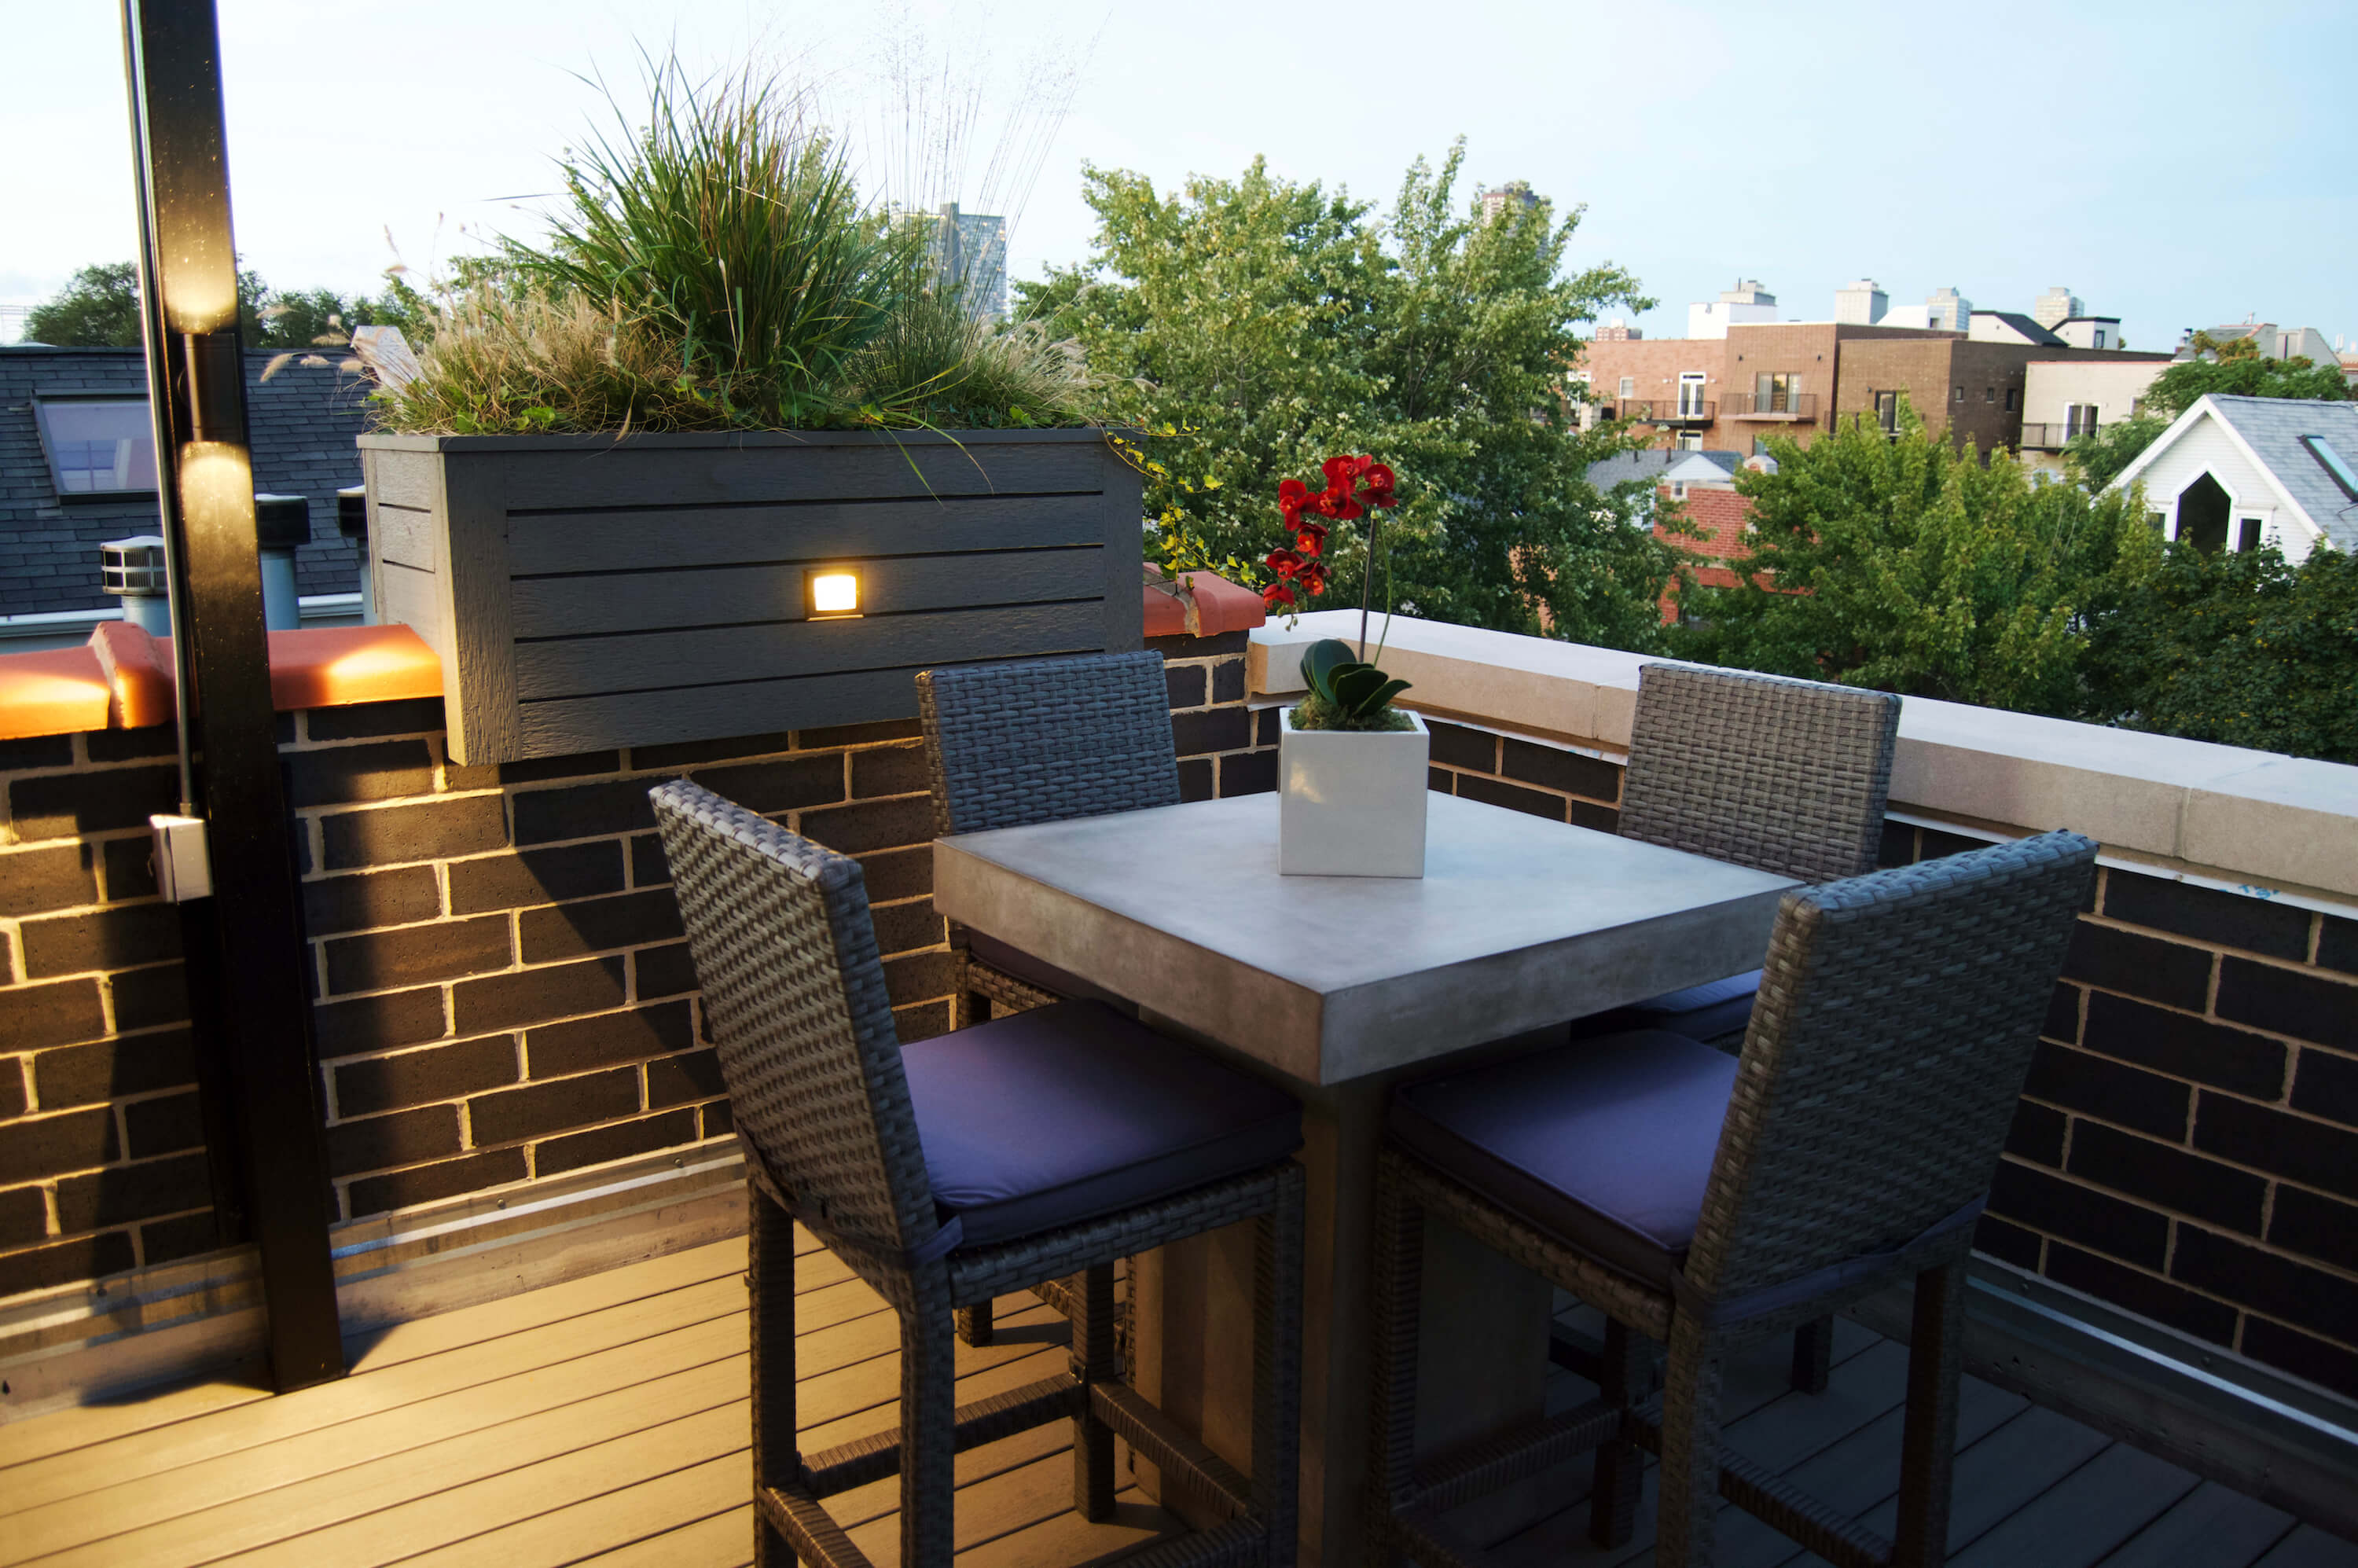 Rooftop Deck With Landscape Lighting Bbq And Outdoor Heater Lakeview Chicago Urban Rooftops Chicago Roof Decks